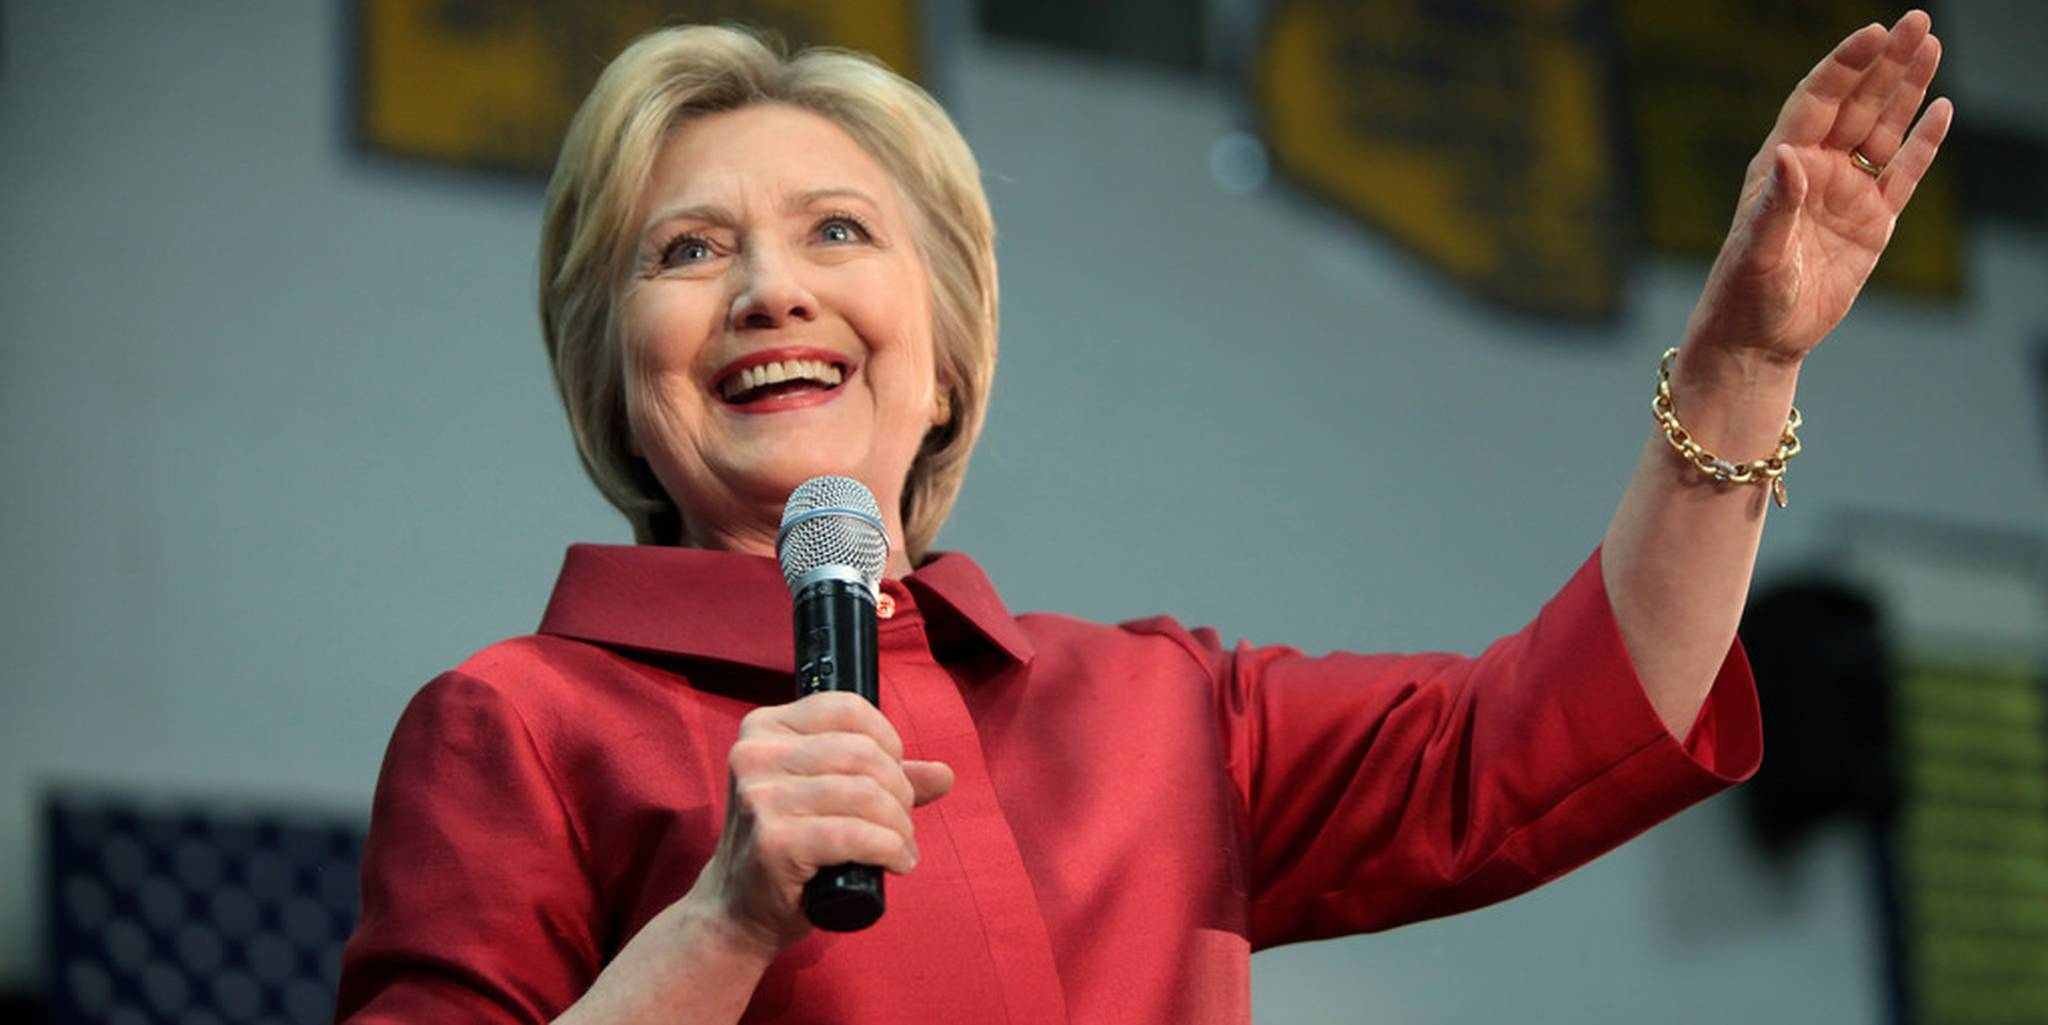 Hillary Clinton holding microphone at rally